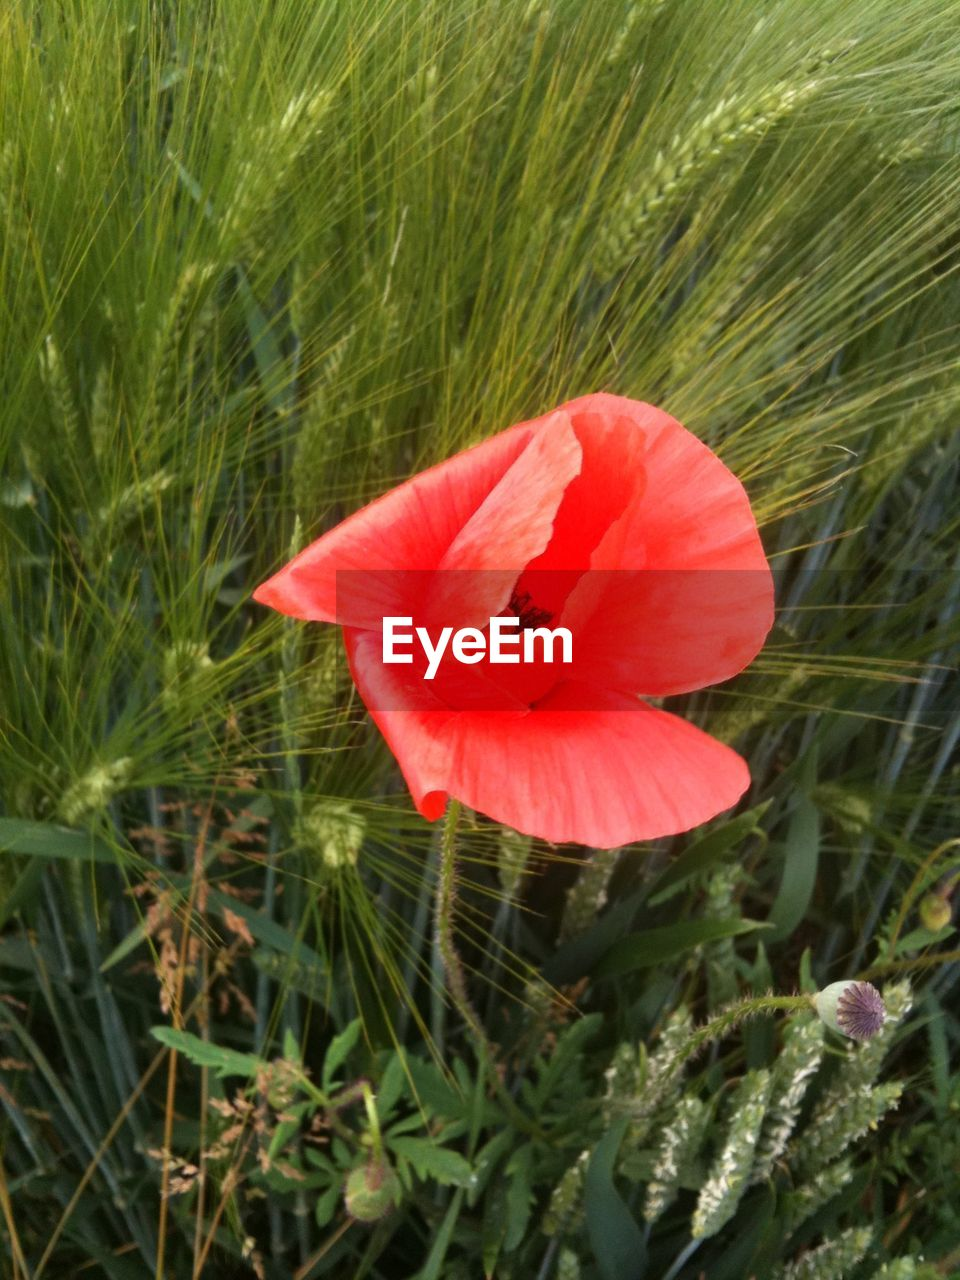 flower, growth, plant, beauty in nature, nature, petal, field, green color, flower head, fragility, freshness, day, blooming, grass, no people, outdoors, poppy, close-up